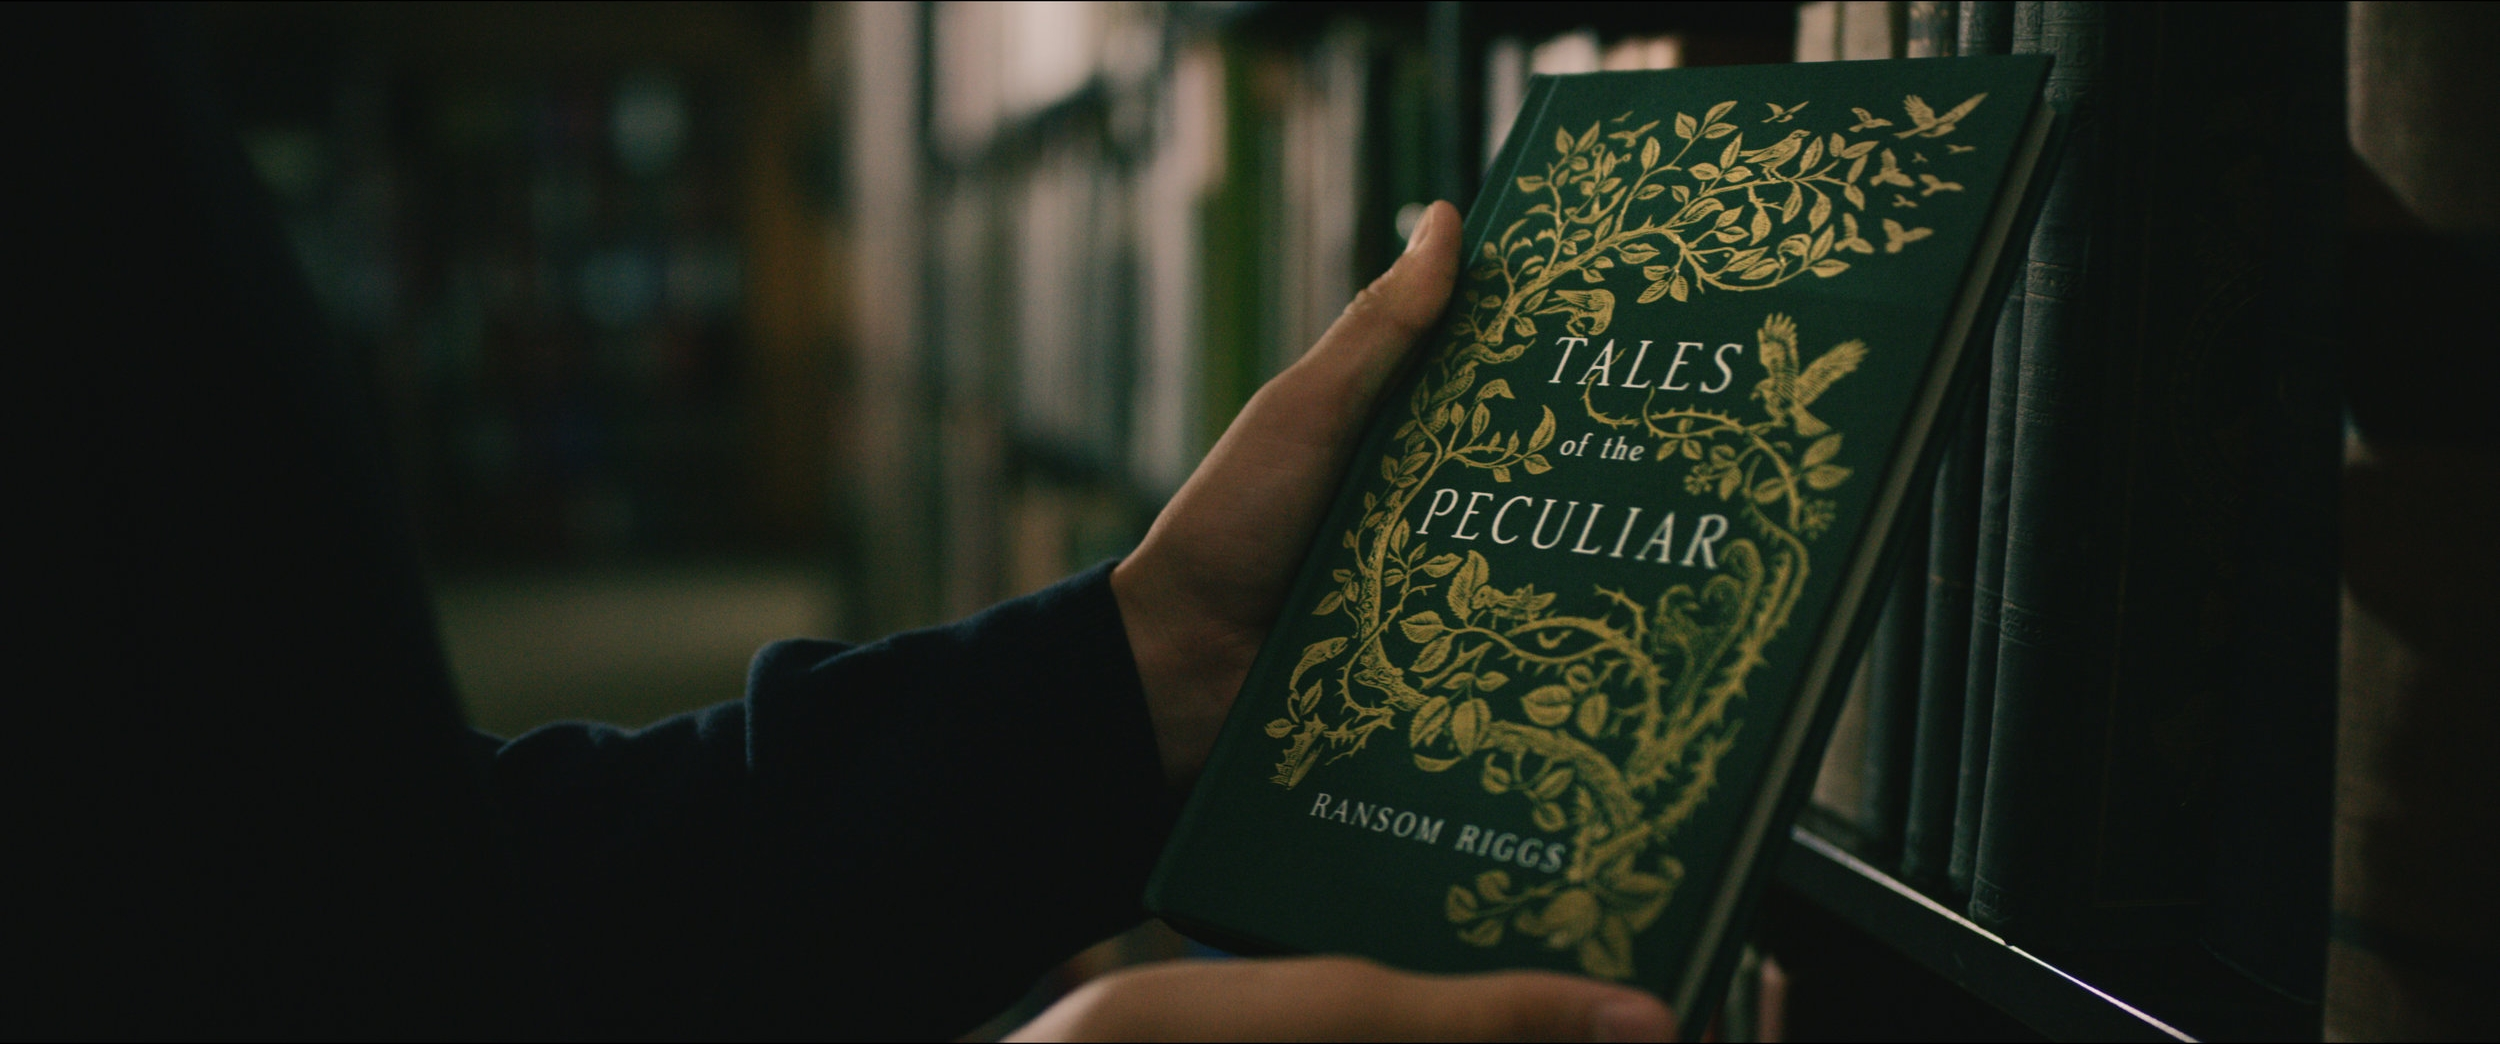 Tales of the Peculiar  - a book by Ransom Riggs